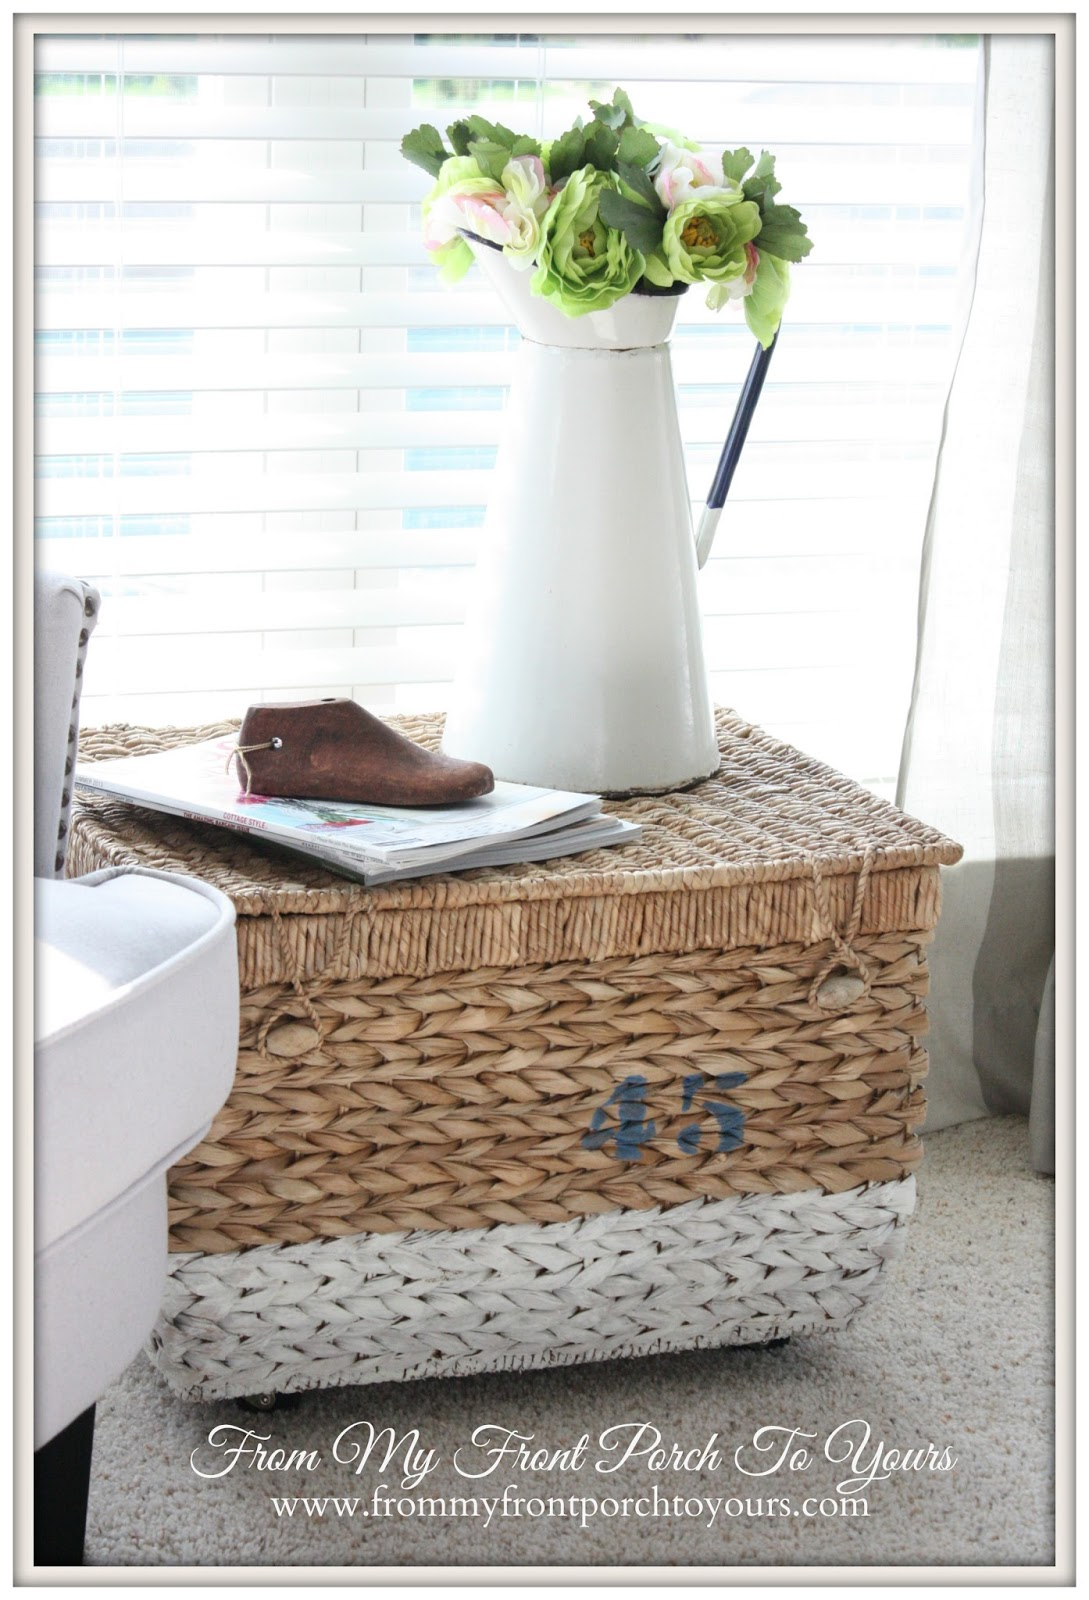 From My Front Porch To Yours- French Farmhouse HomeGoods Basket